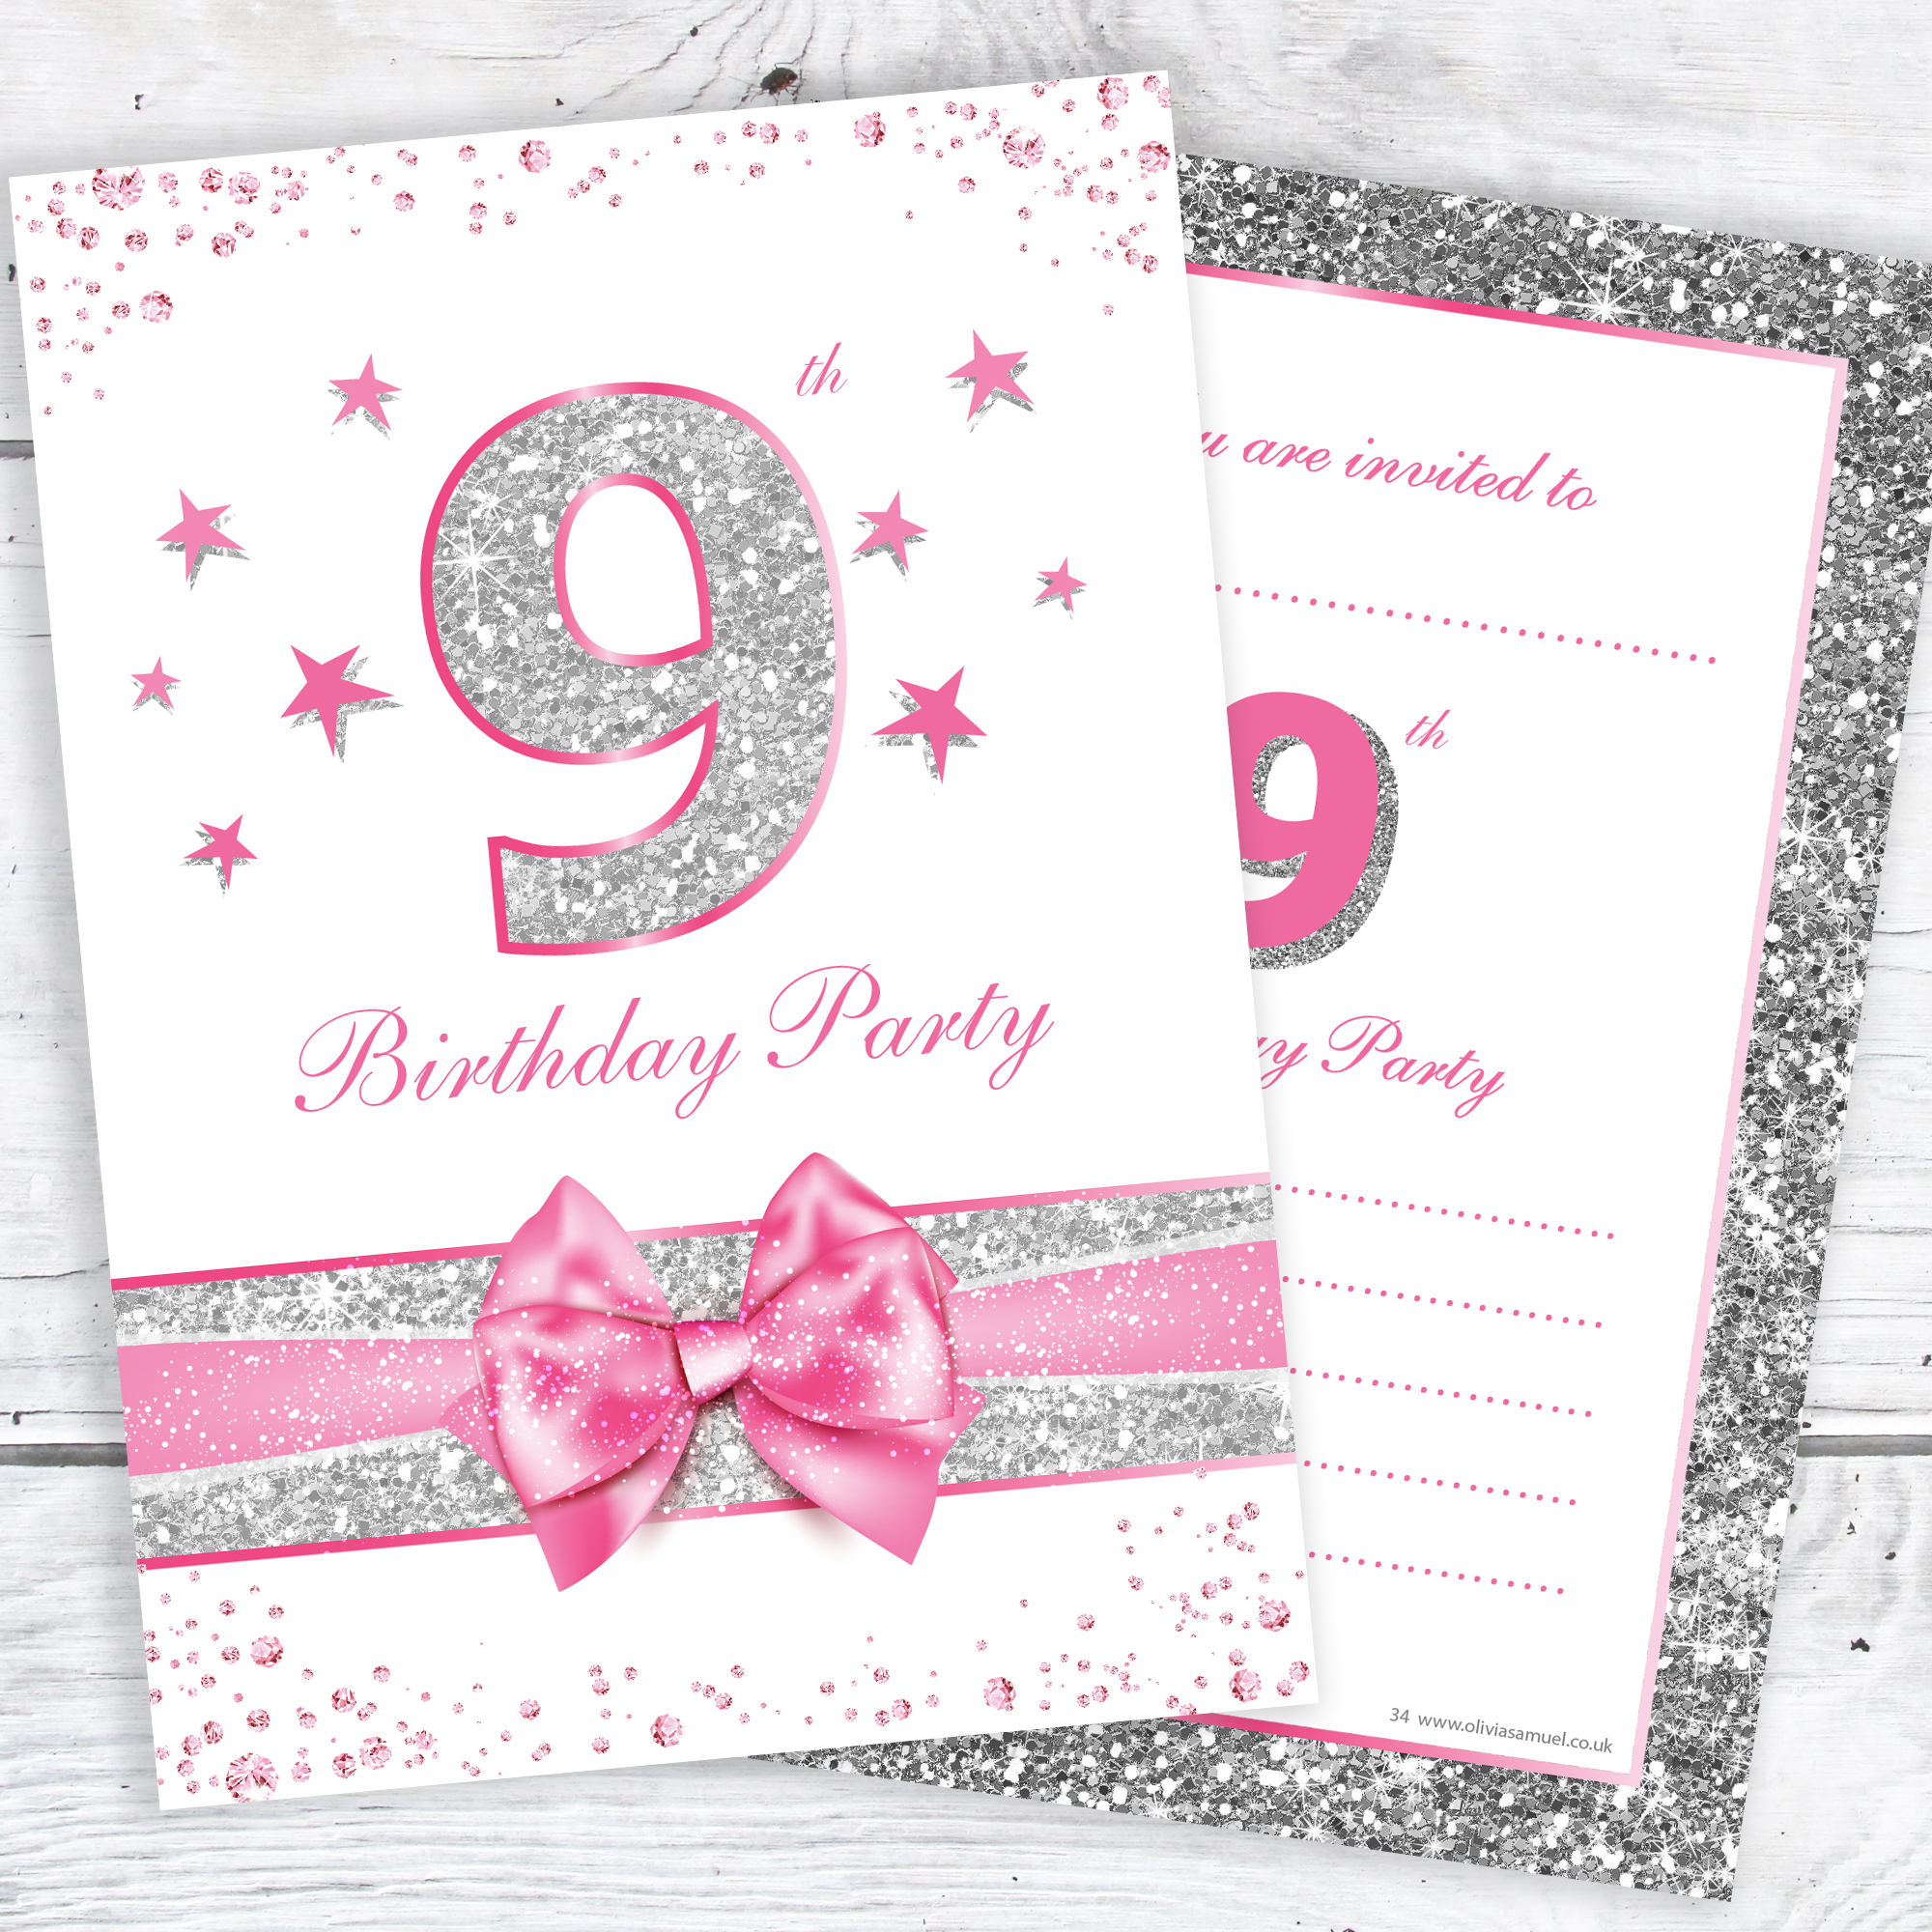 9th Birthday Party Invitations Pink Sparkly Design And Photo Effect Silver Glitter A6 Postcard Size With Envelopes Pack Of 10